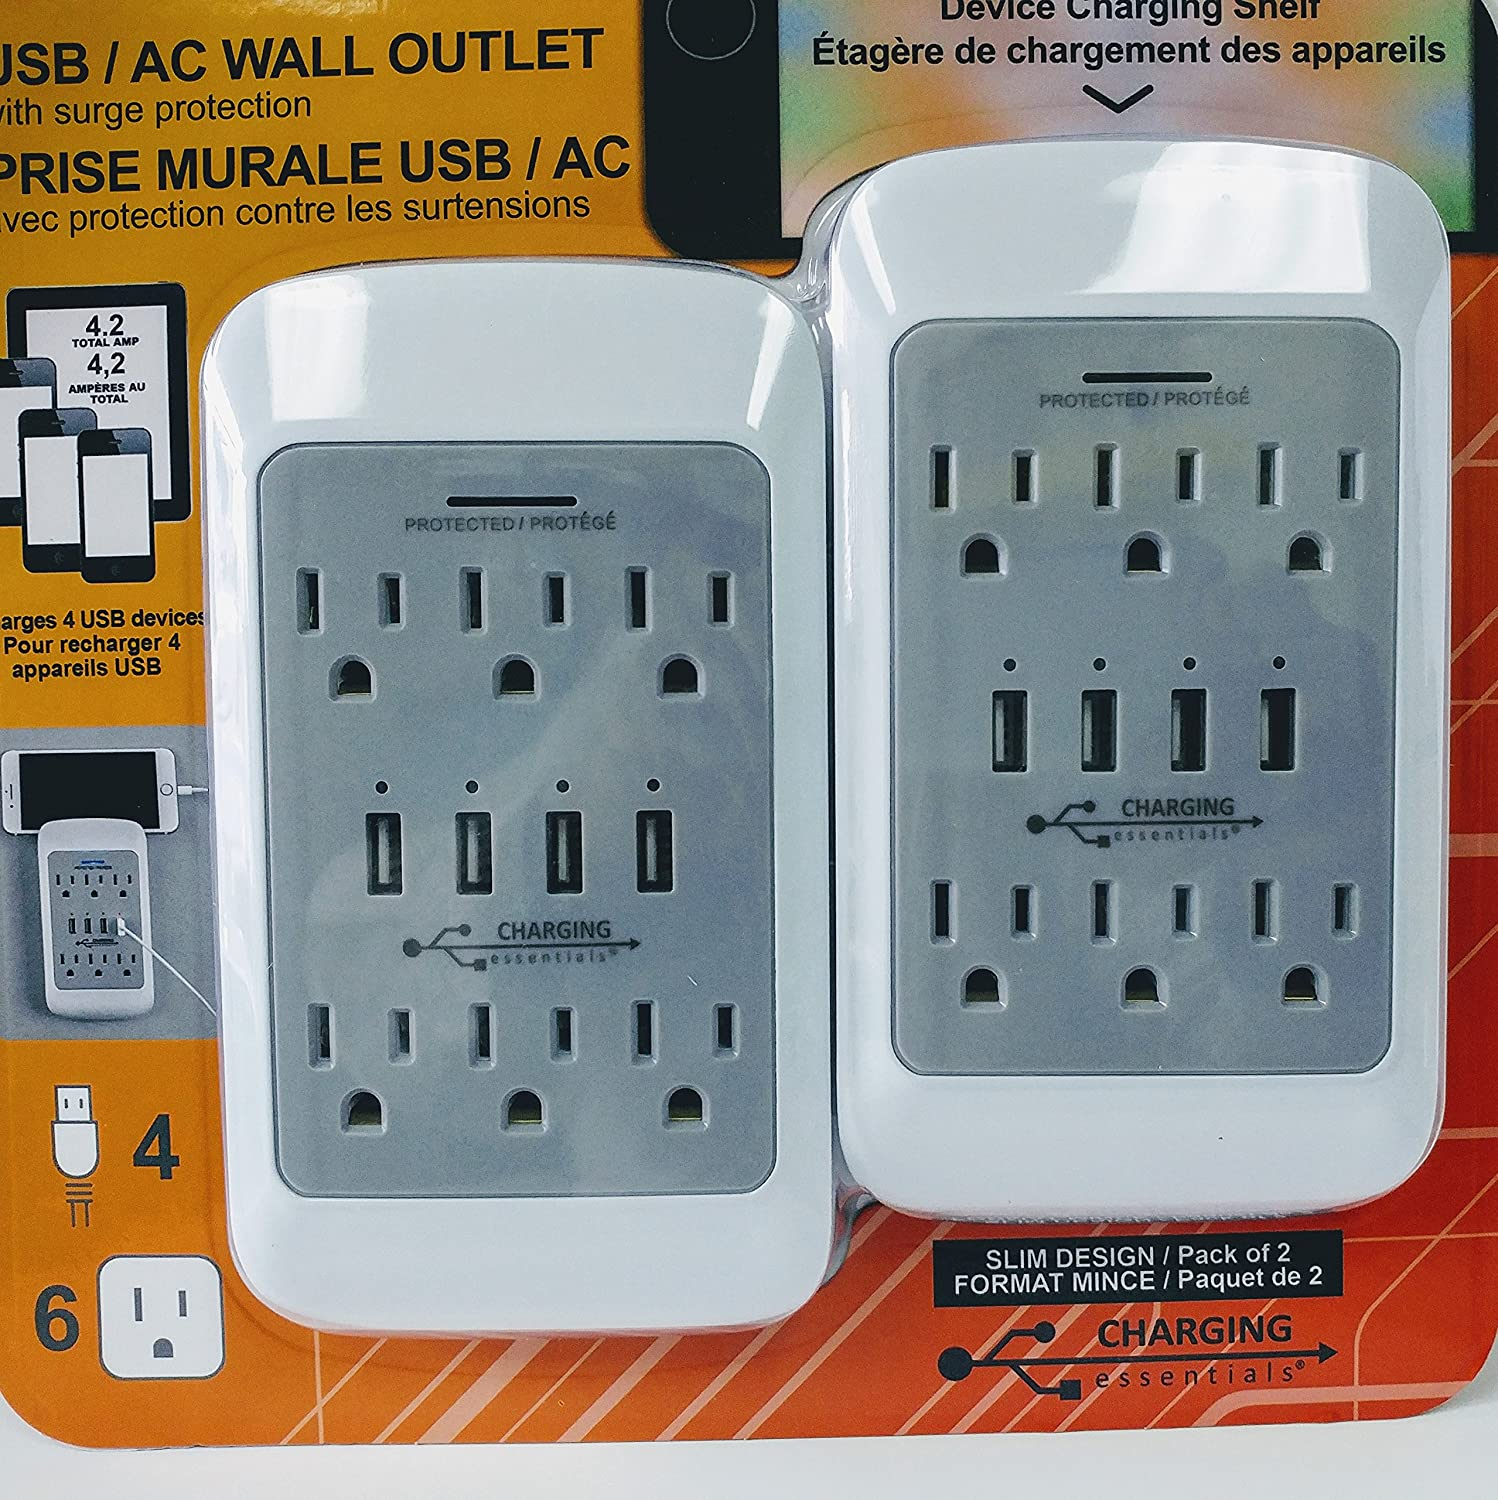 2 Pack USB/AC Charging Outlet with Surge Protection, 4 USB Ports, 6 AC Outlet W/ LED Charging Indicator Light BDC